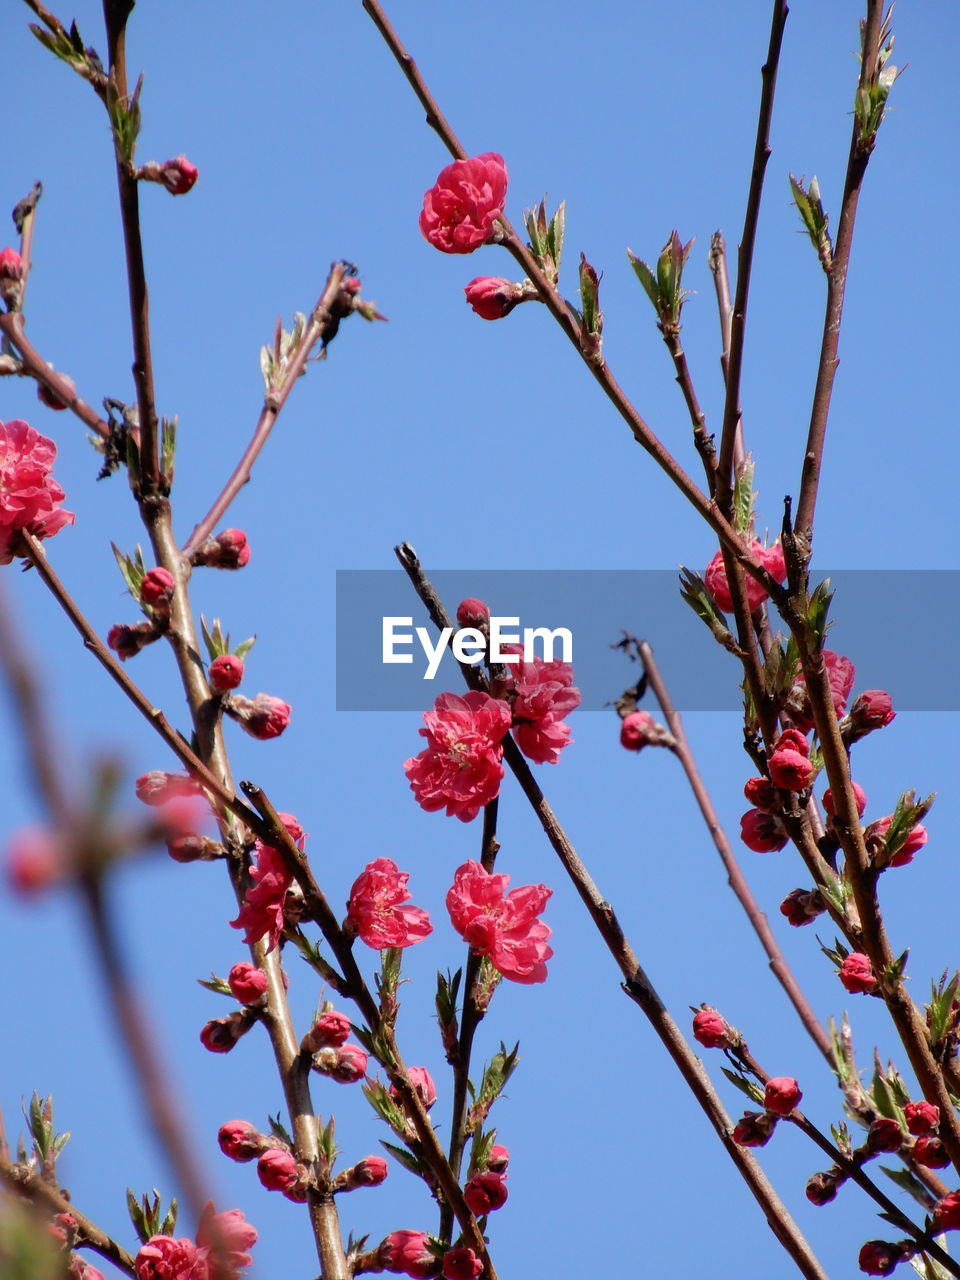 plant, growth, low angle view, flower, tree, freshness, sky, flowering plant, beauty in nature, red, nature, fragility, no people, branch, vulnerability, close-up, day, blossom, petal, springtime, outdoors, flower head, cherry tree, spring